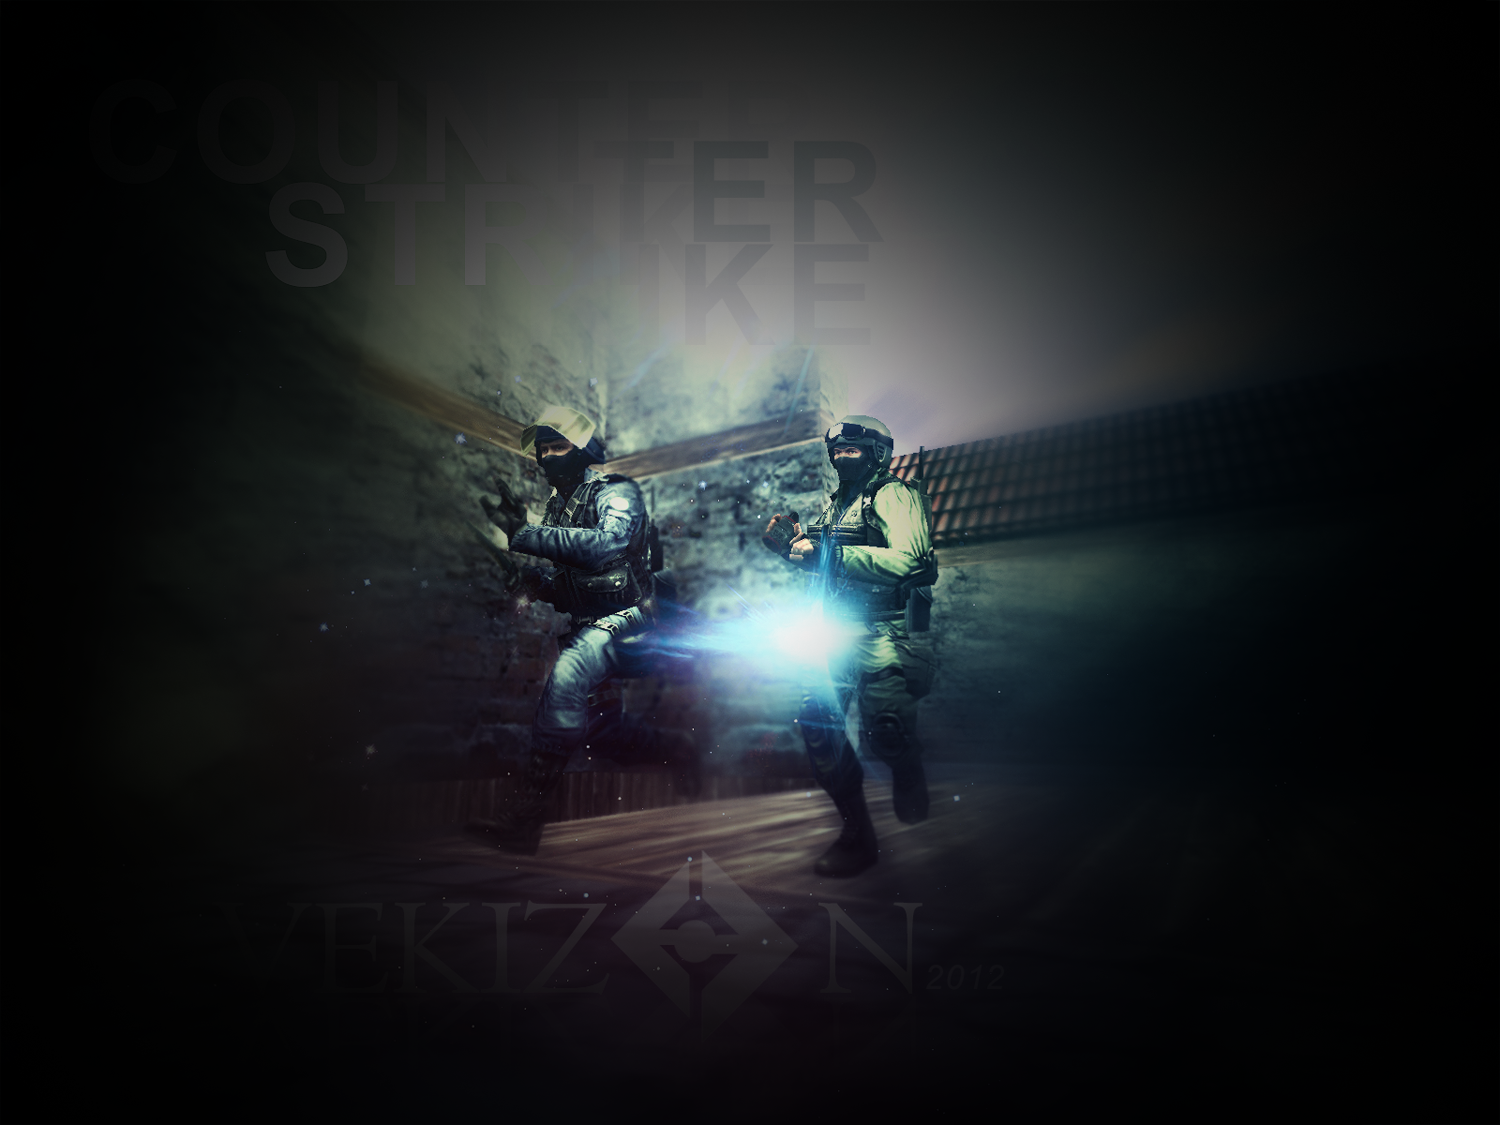 Counter Strike Wallpaper by ZiDes1gn on deviantART 1500x1125